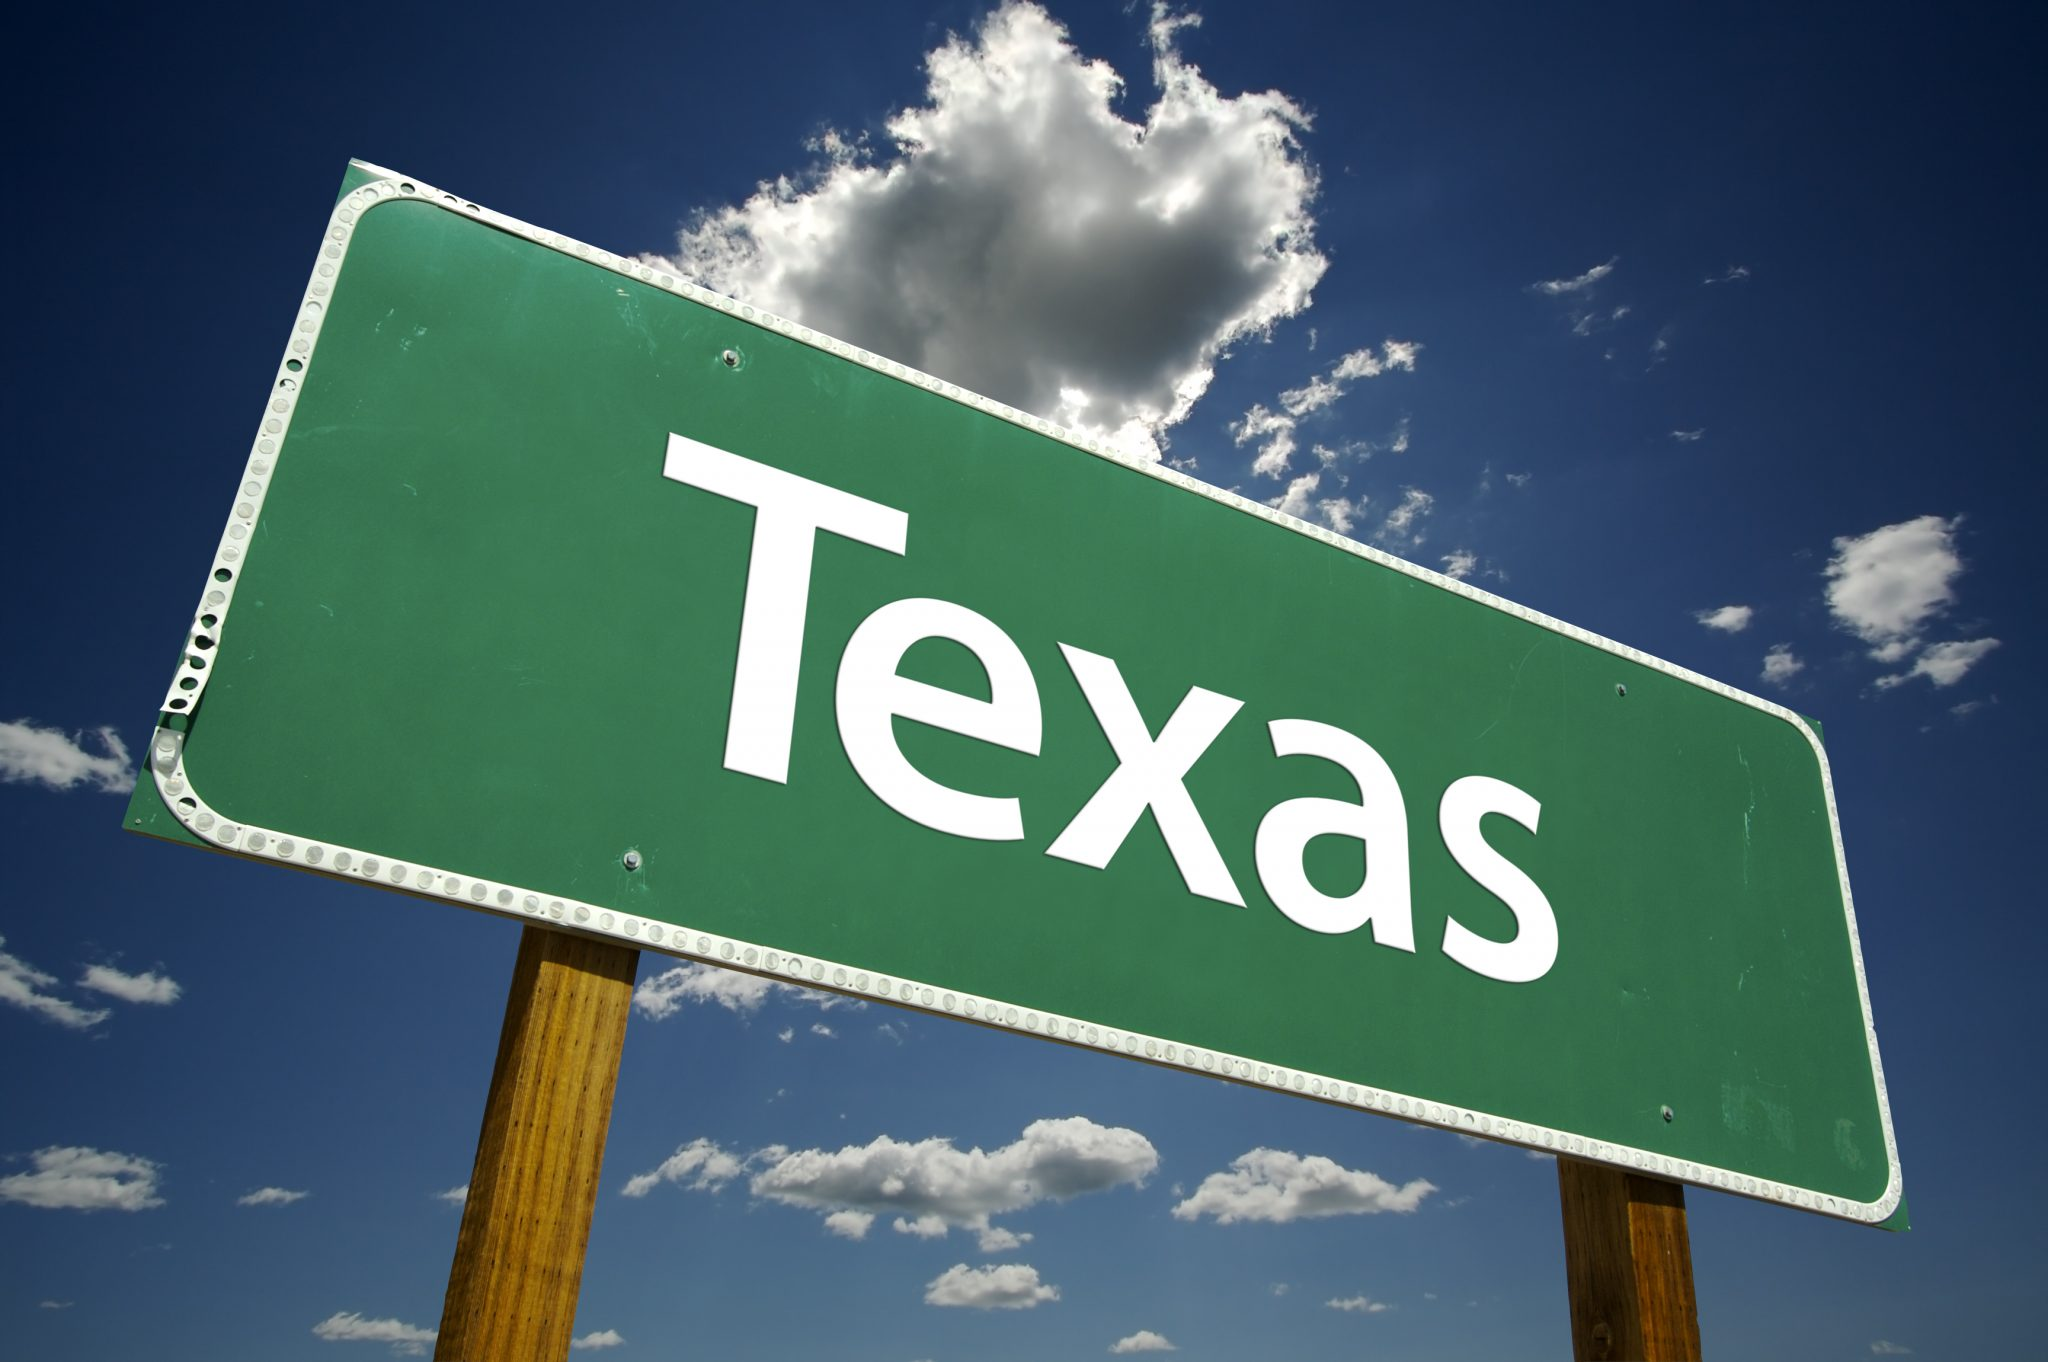 Texas Road Sign Over Sky and Clouds